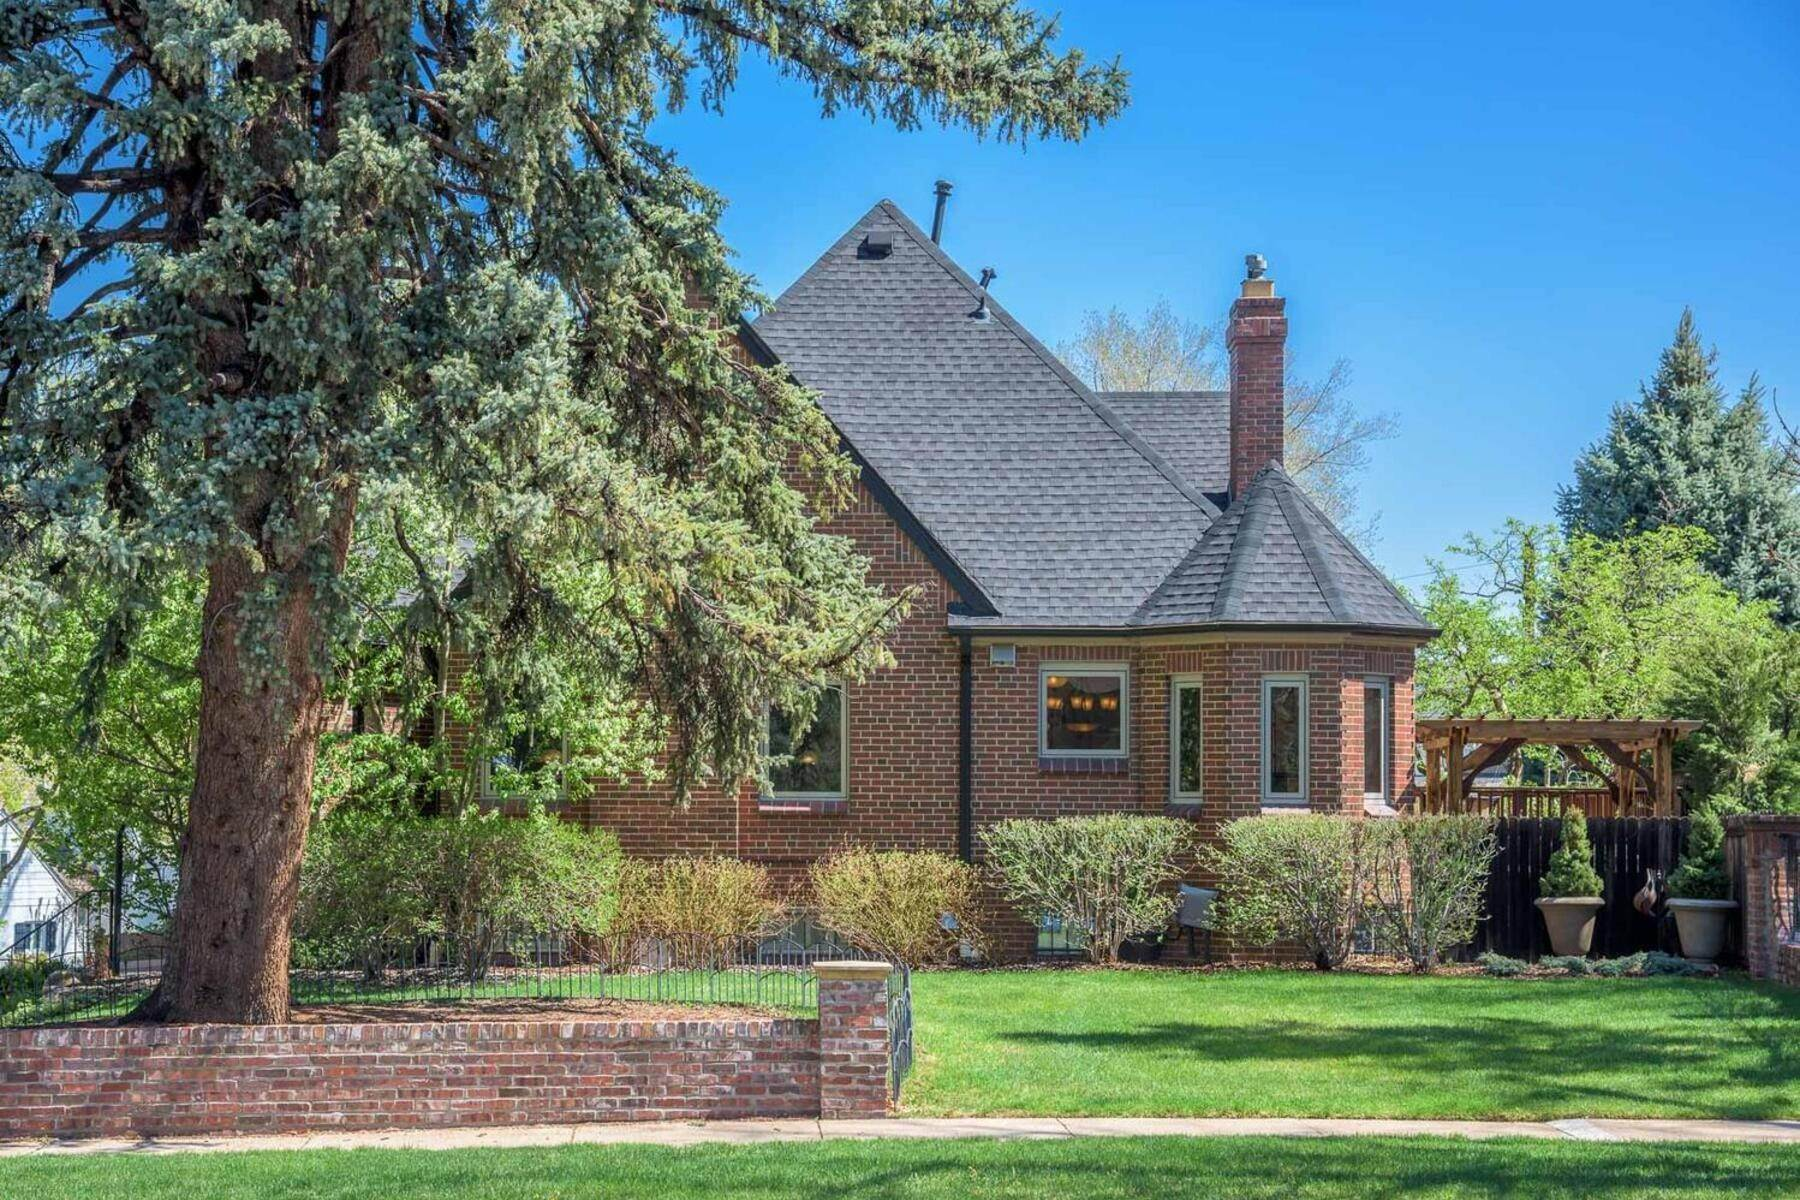 Single Family Homes for Sale at Stunning Home With True Character! 814 Bonnie Brae Boulevard Denver, Colorado 80209 United States